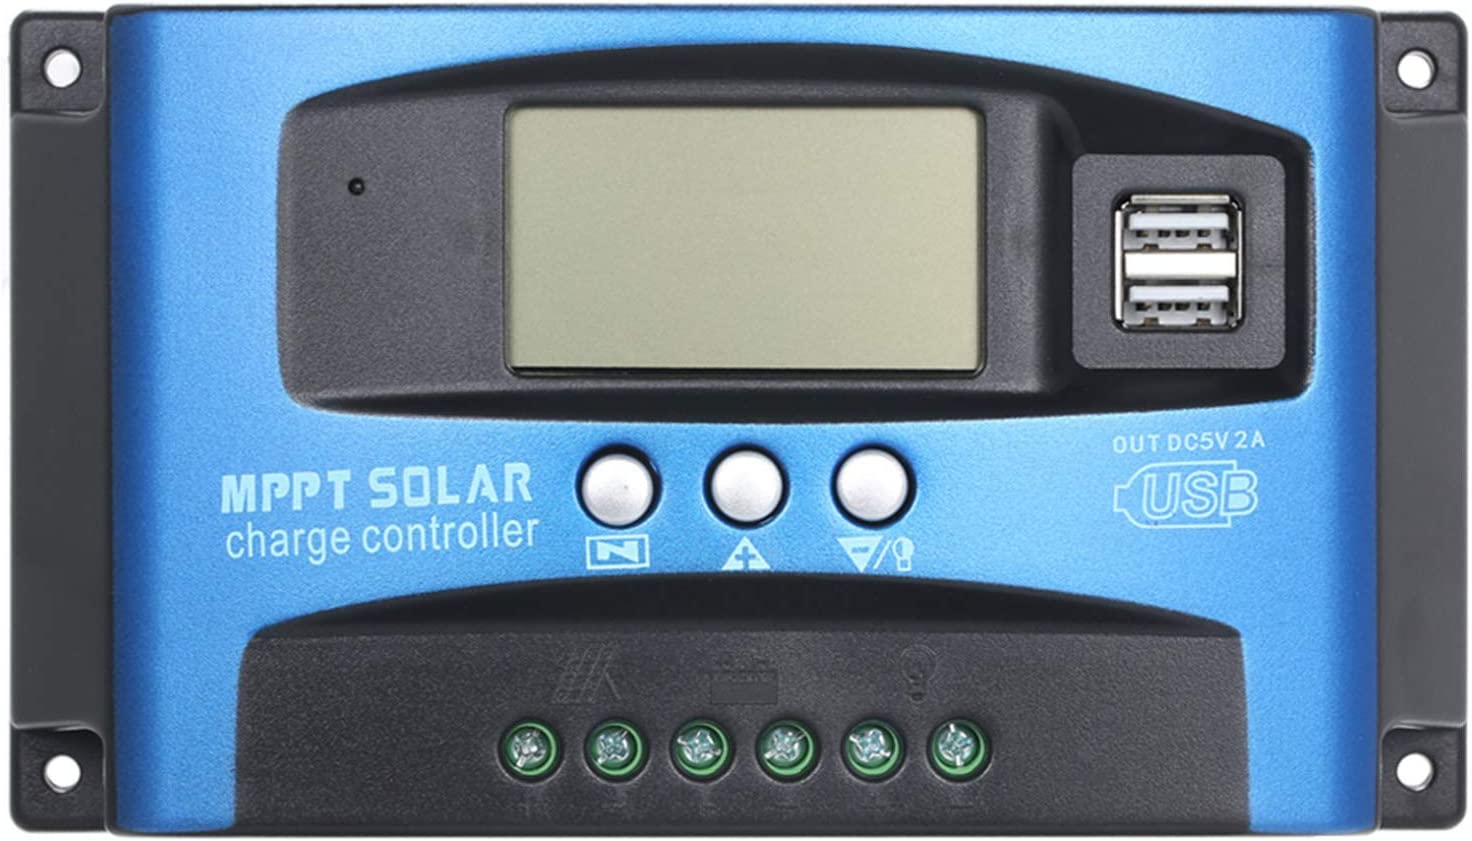 1 year Outlet sale feature warranty Gecheer MPPT Solar Charge Controller Dual USB S Auto LCD Display